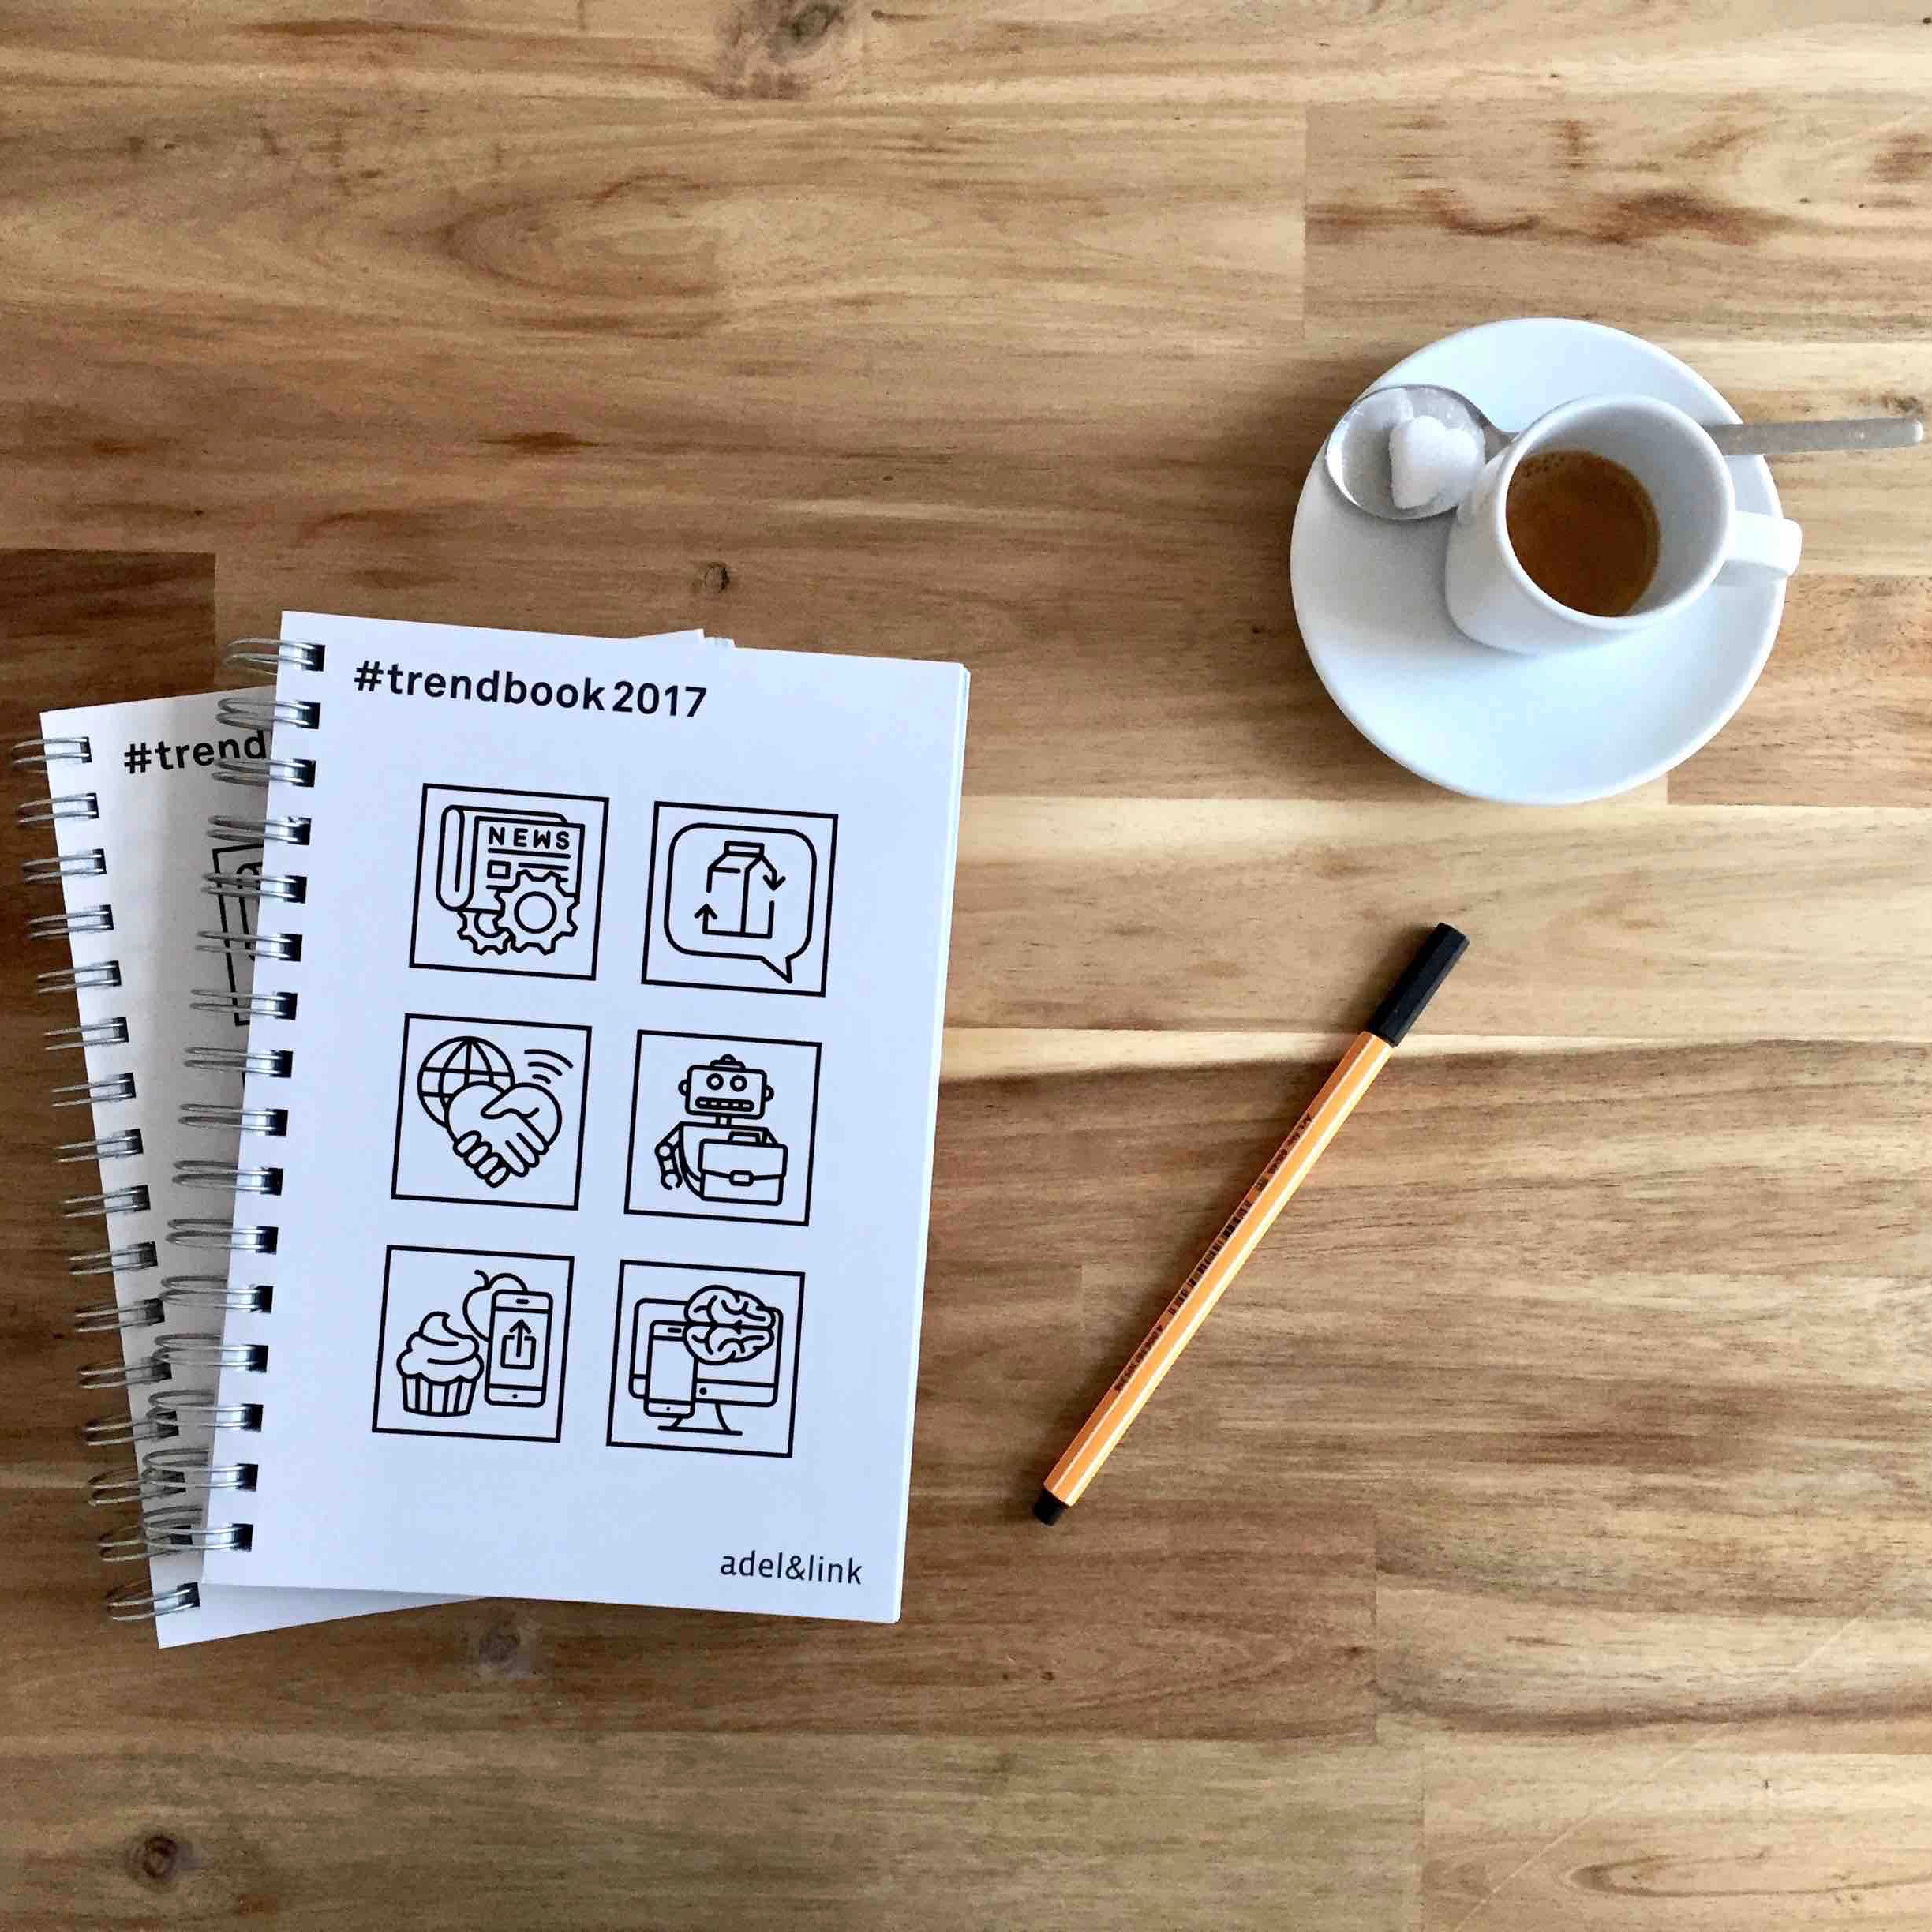 Trends 2017 – brought to paper